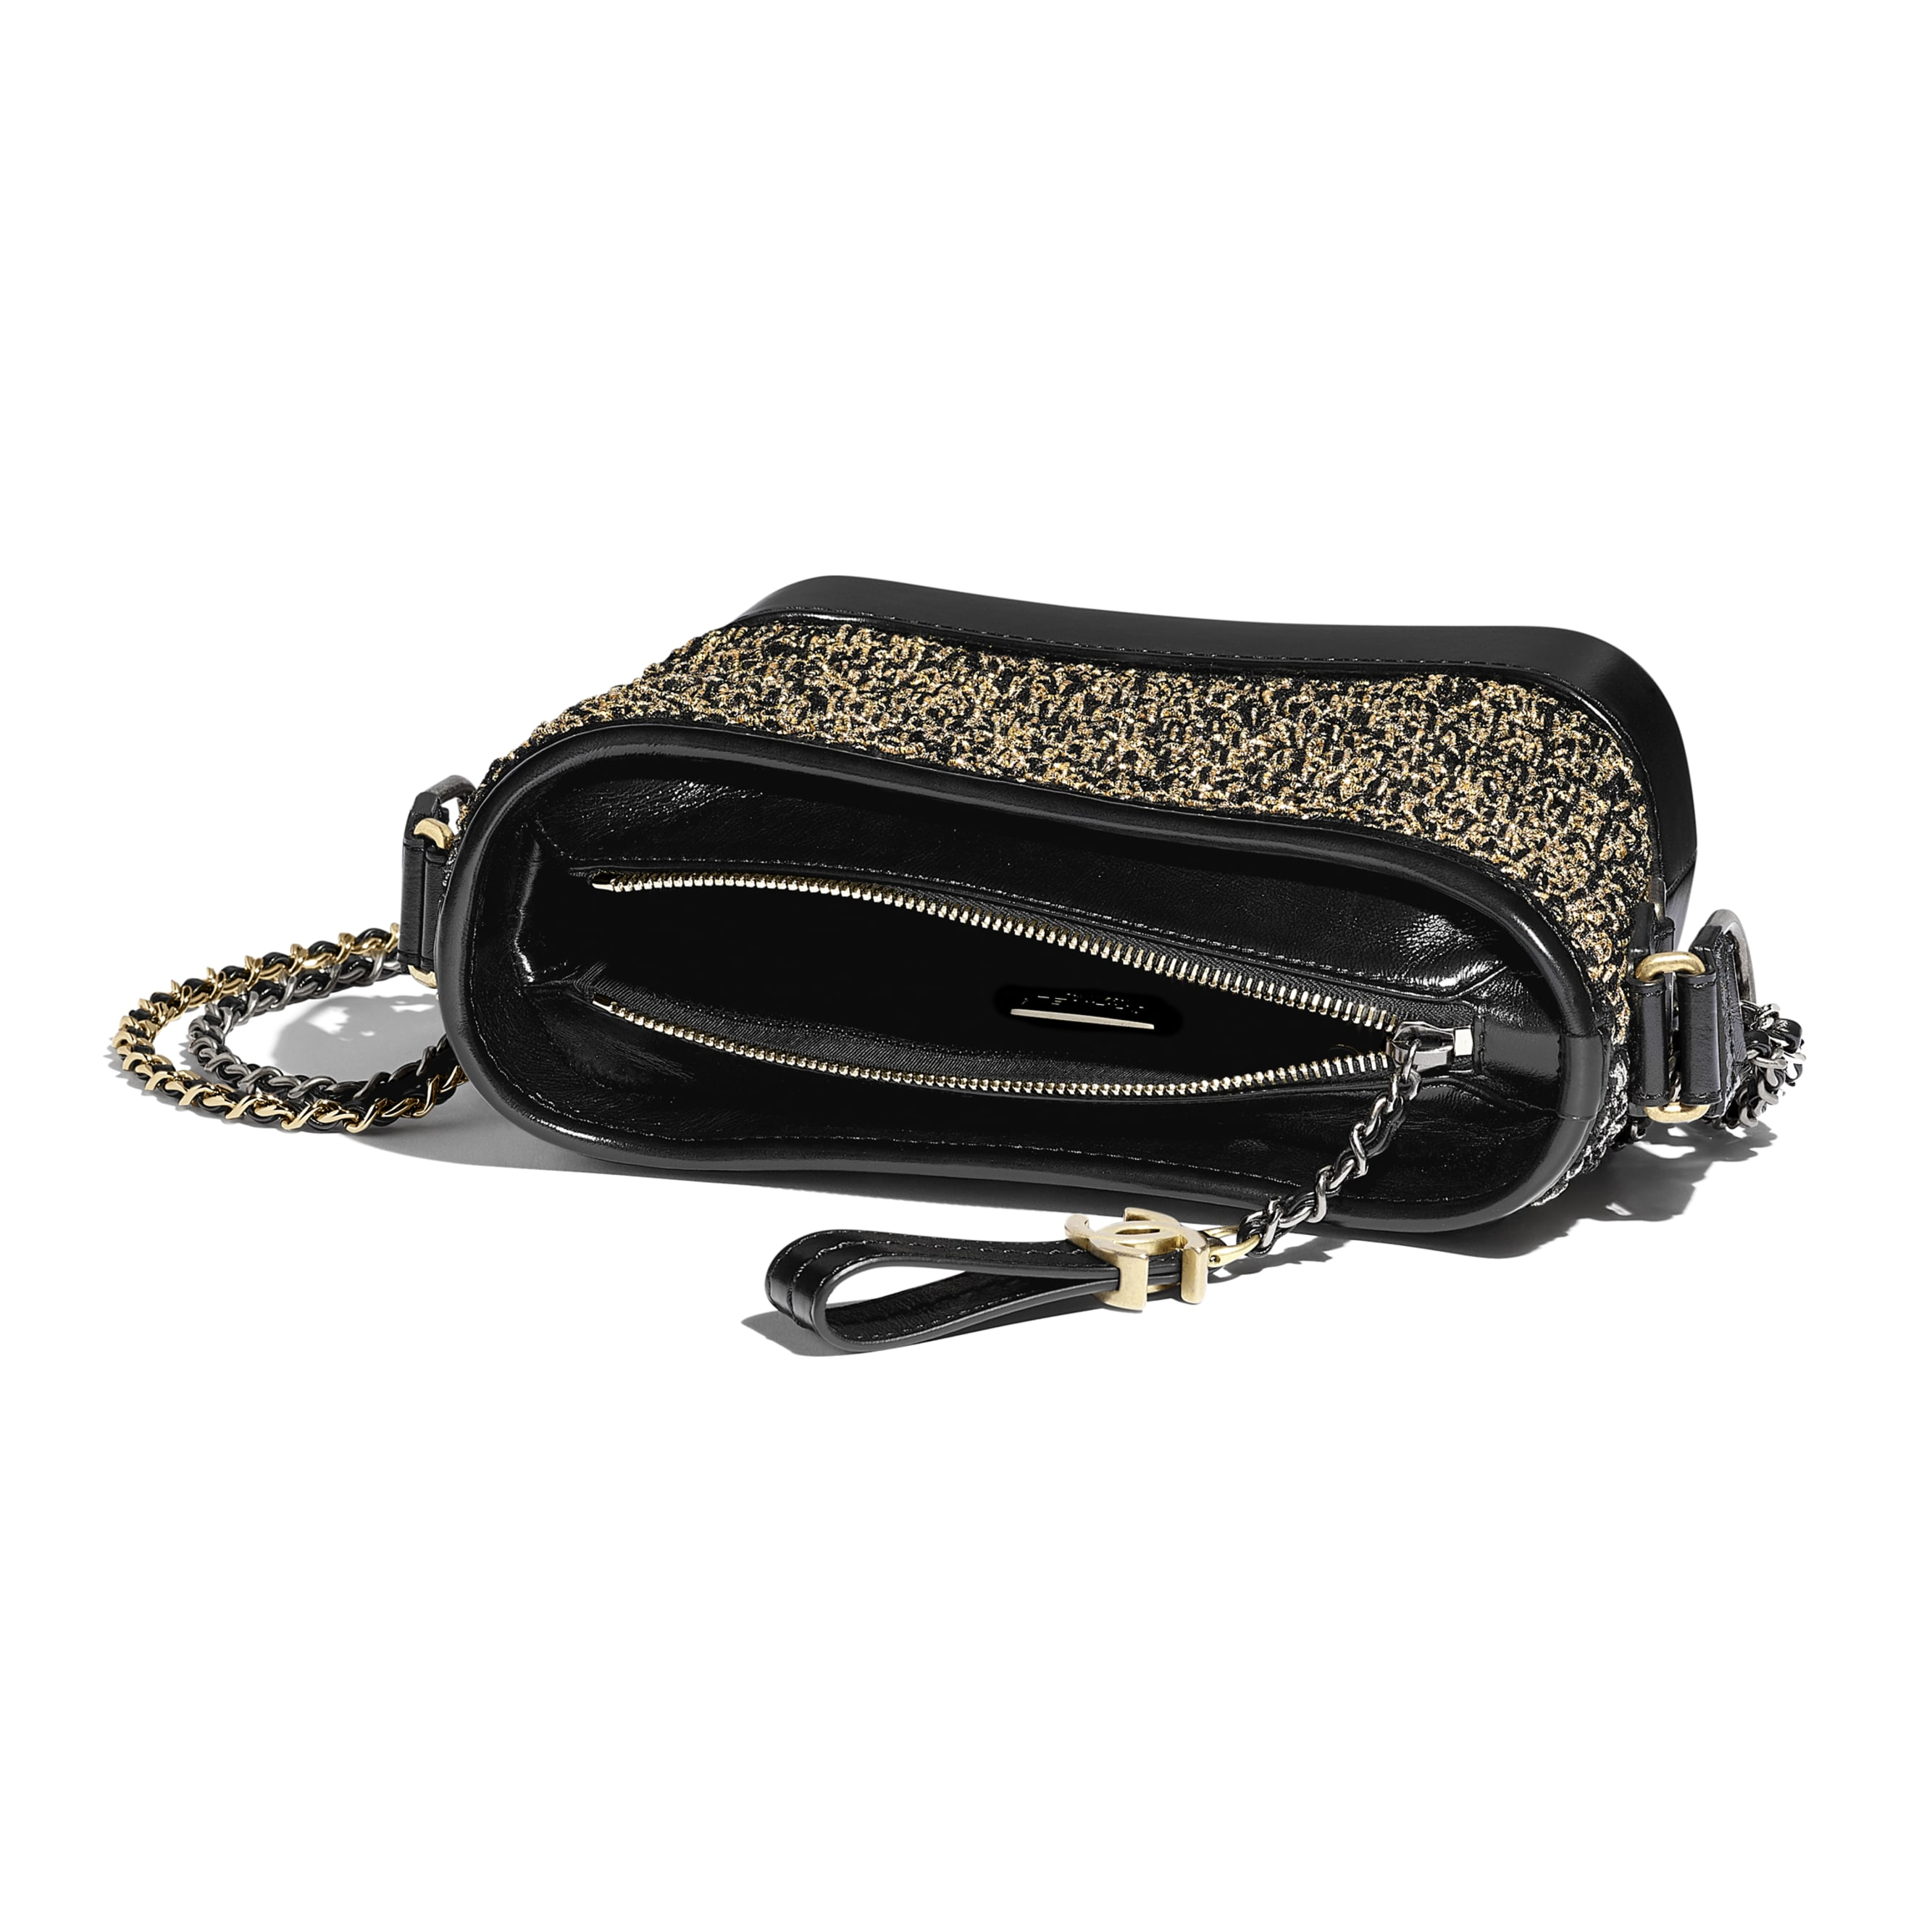 CHANEL'S GABRIELLE Small Hobo Bag - Black & Gold - Cotton, Calfskin, Gold-Tone & Silver-Tone Metal - Other view - see standard sized version